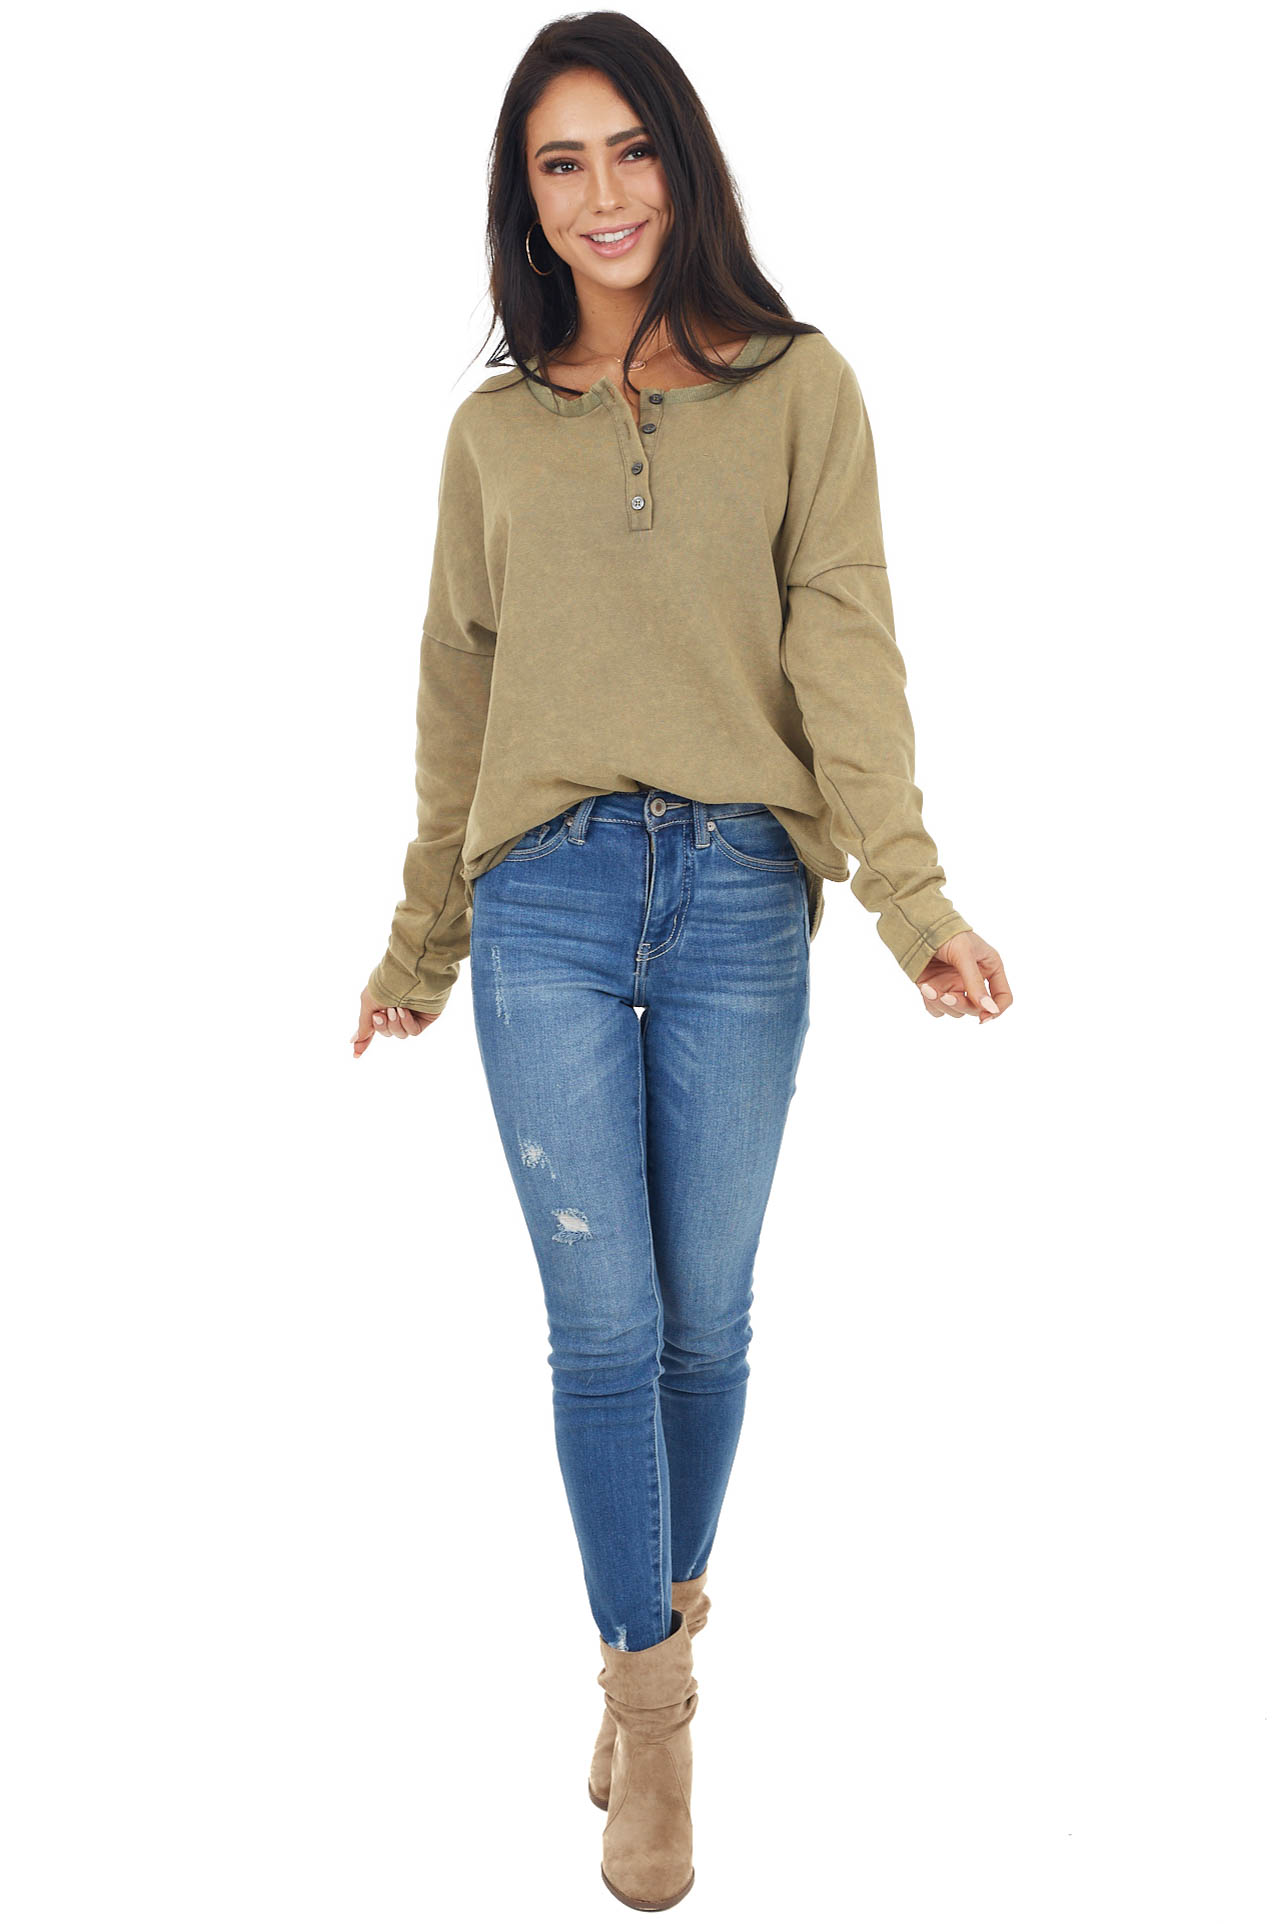 Pistachio Mineral Wash Long Sleeve Henley Top